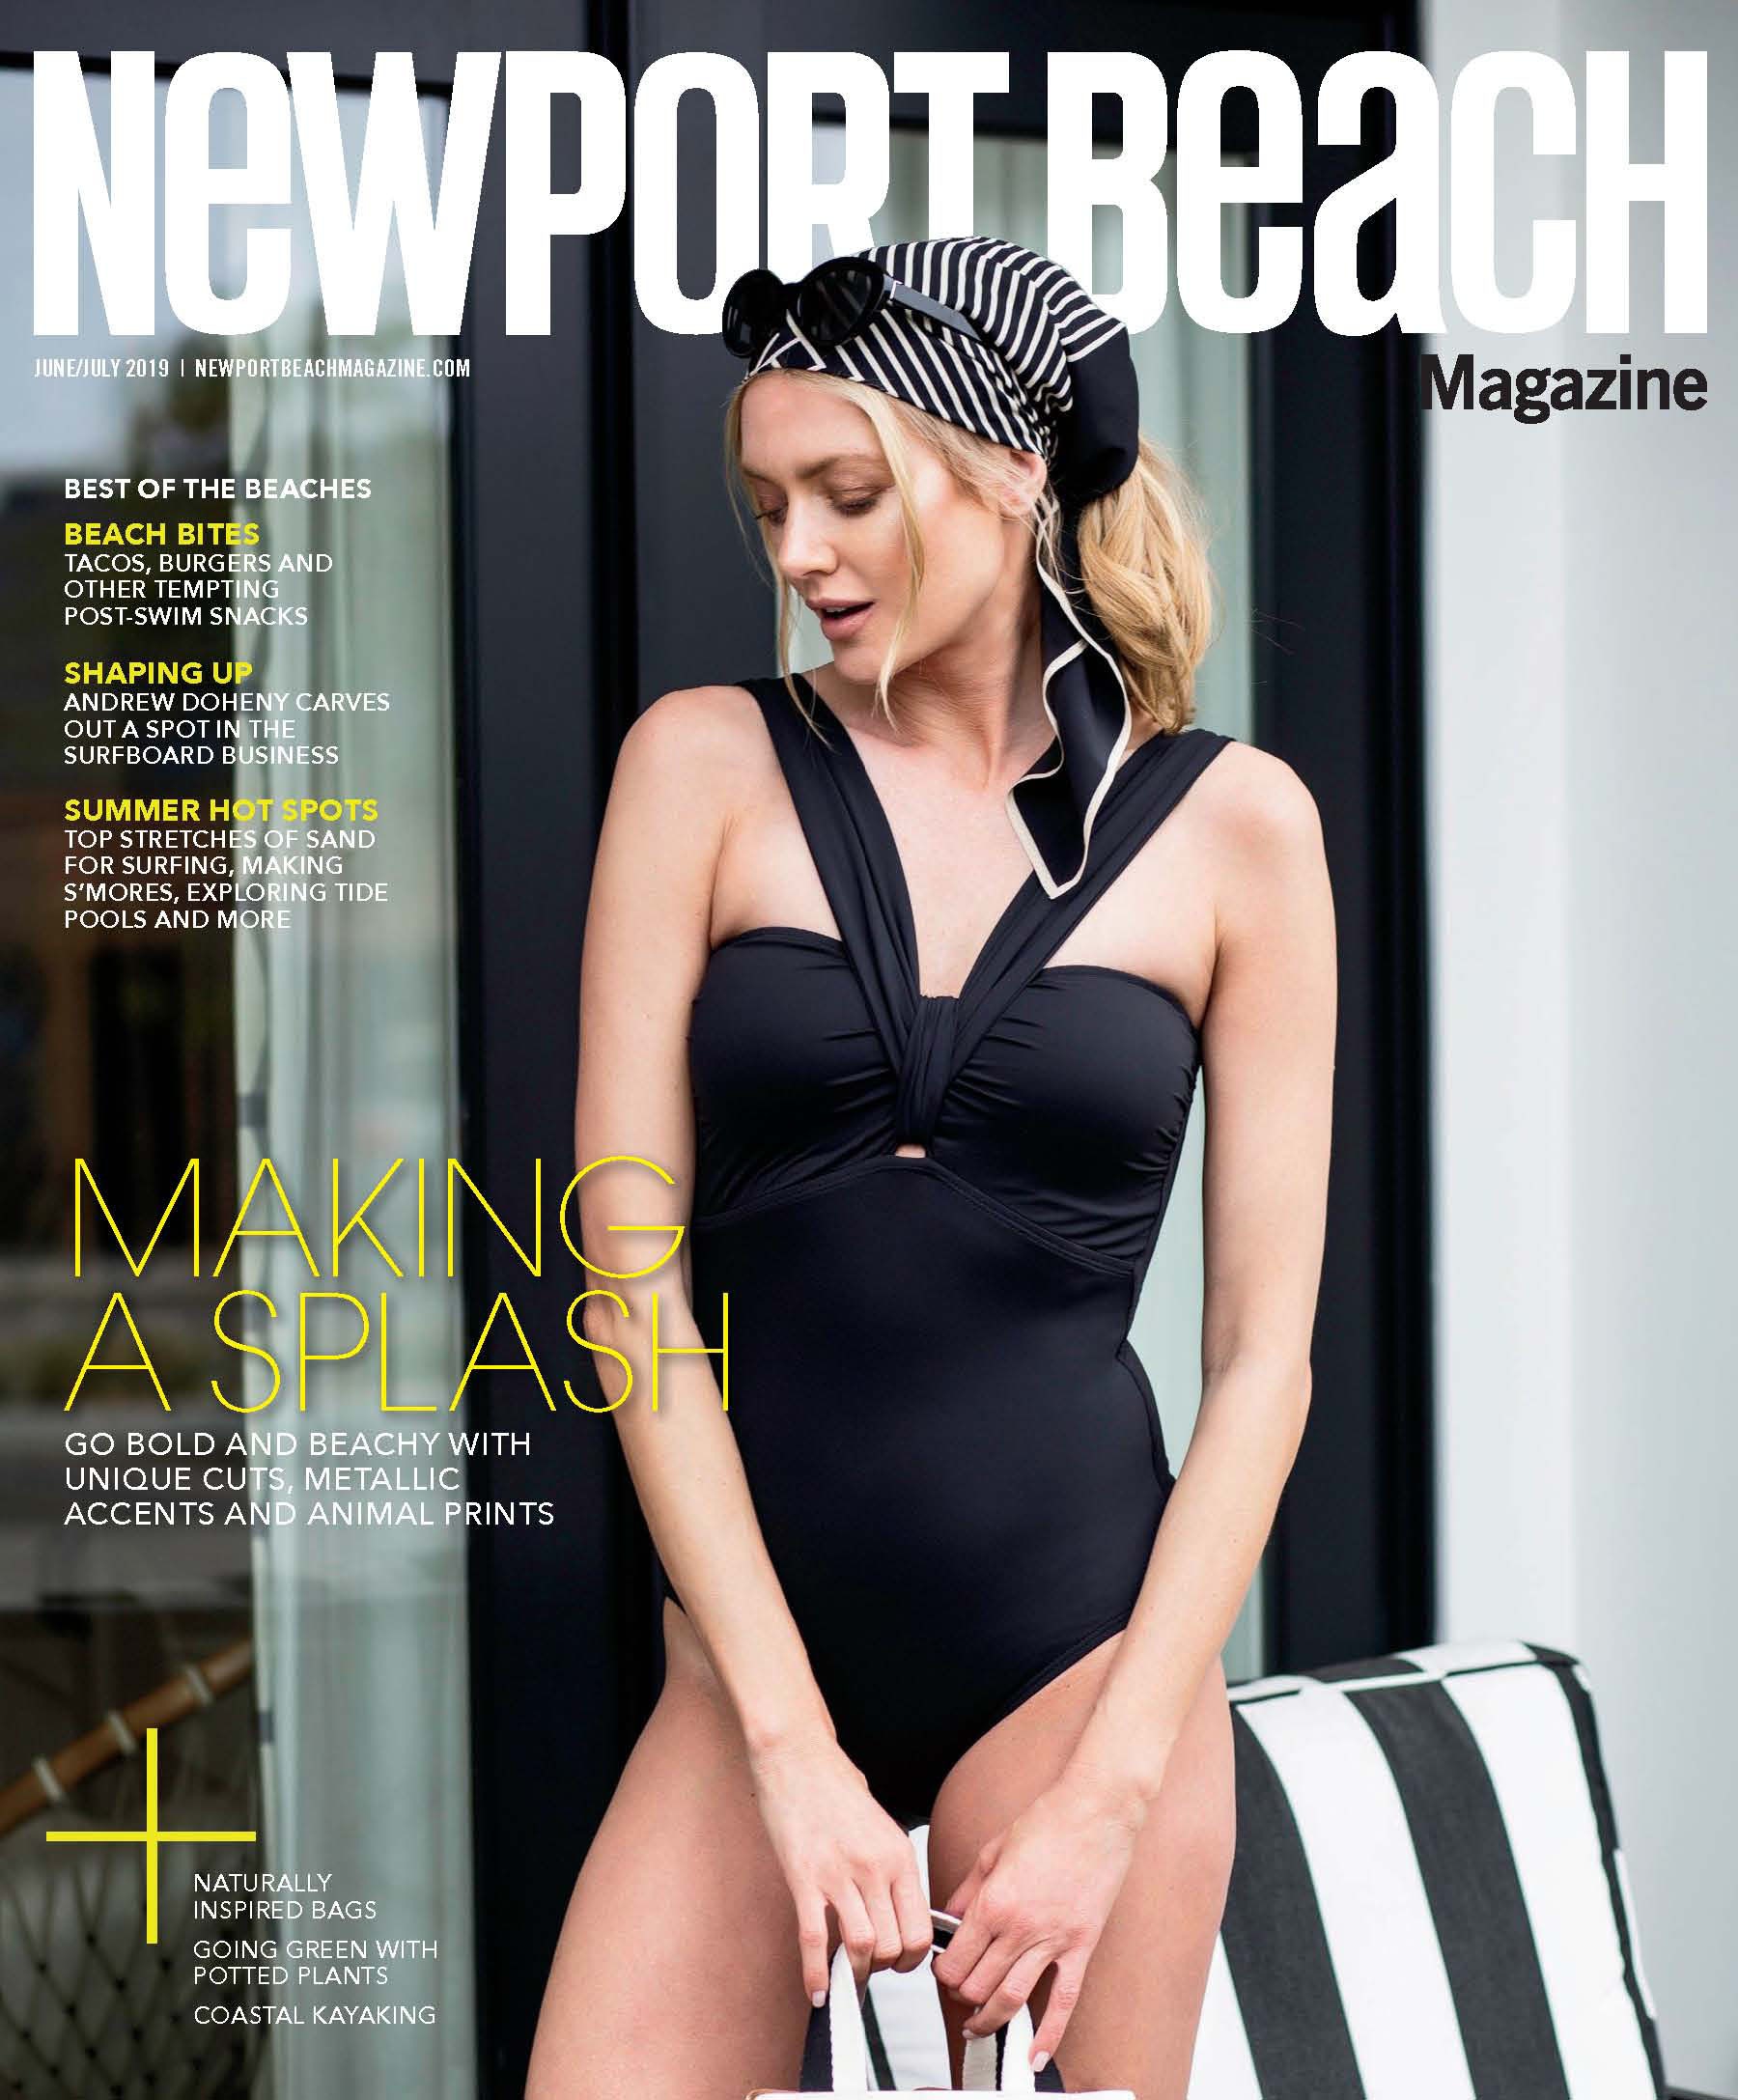 Newport Beach Magazine - June July Issue